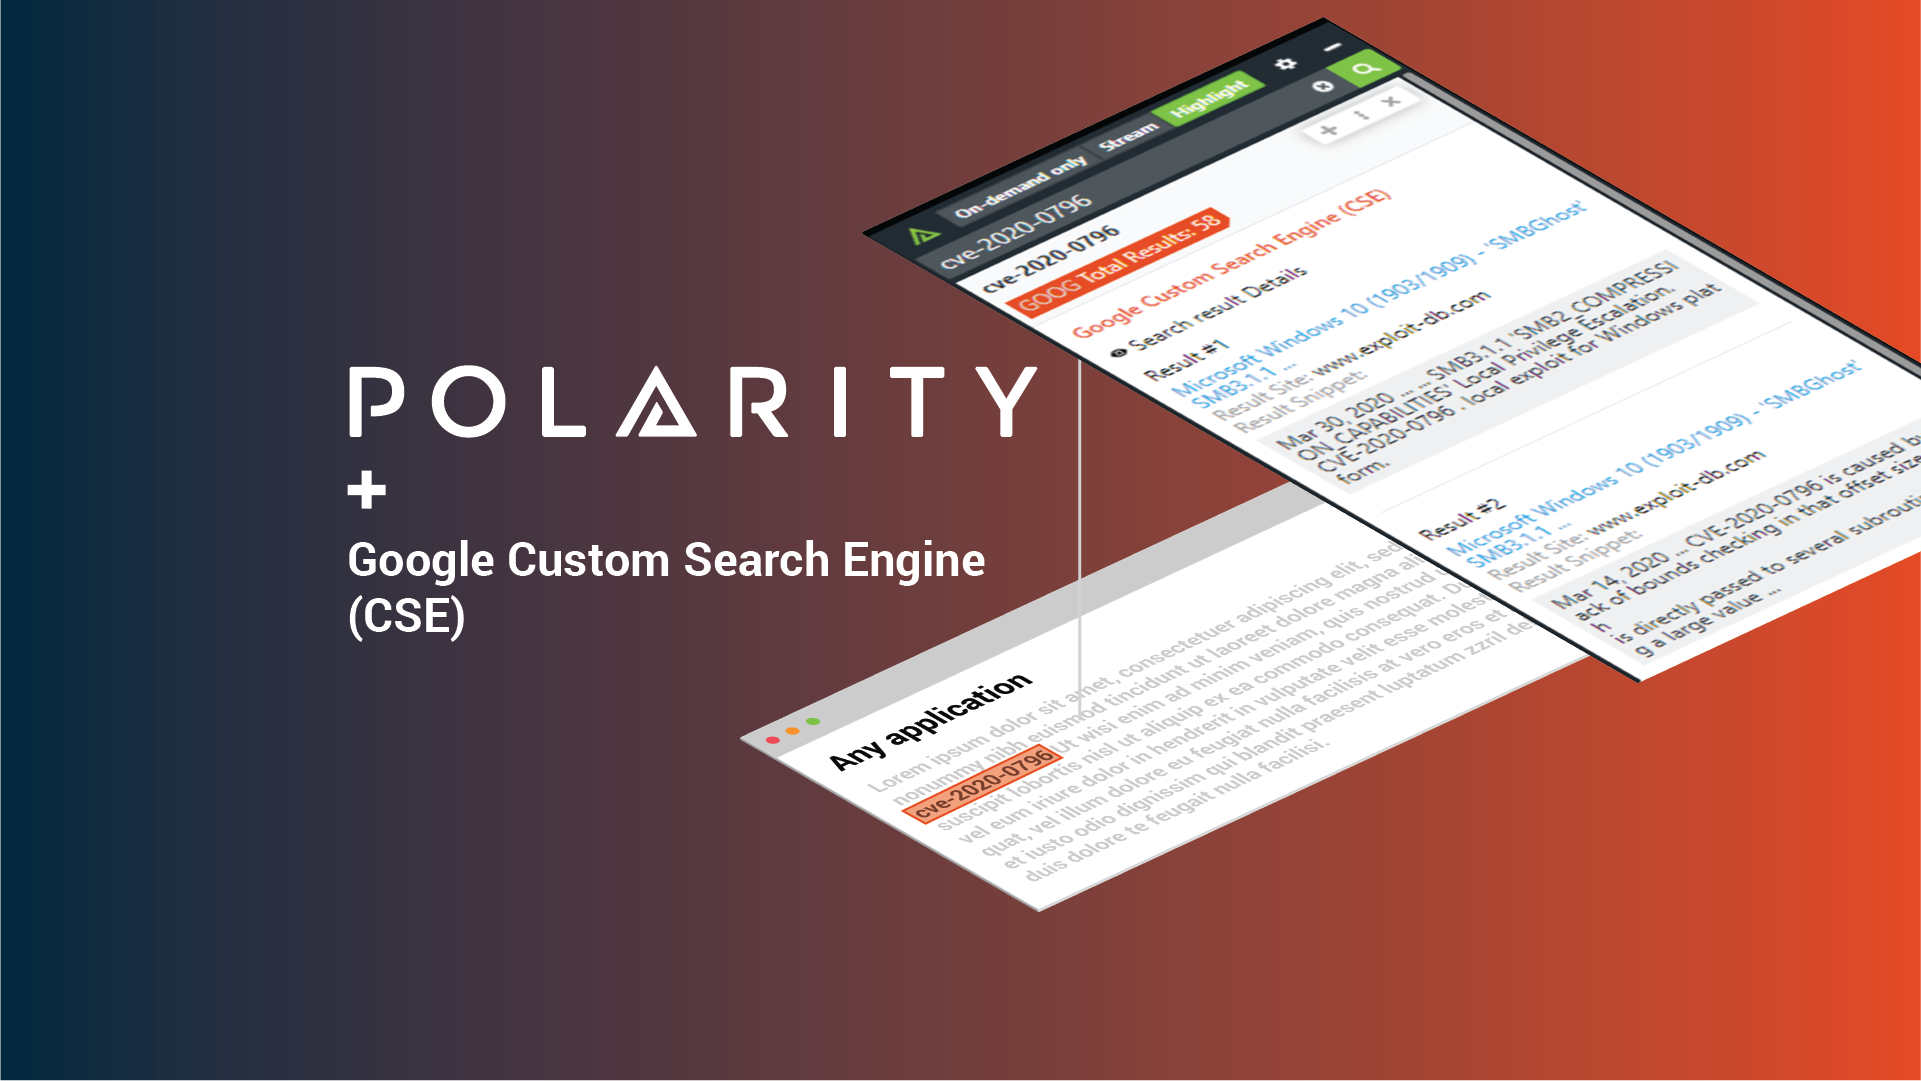 Search for anything with the Polarity - Google Custom Search Integration Part 1 cover image